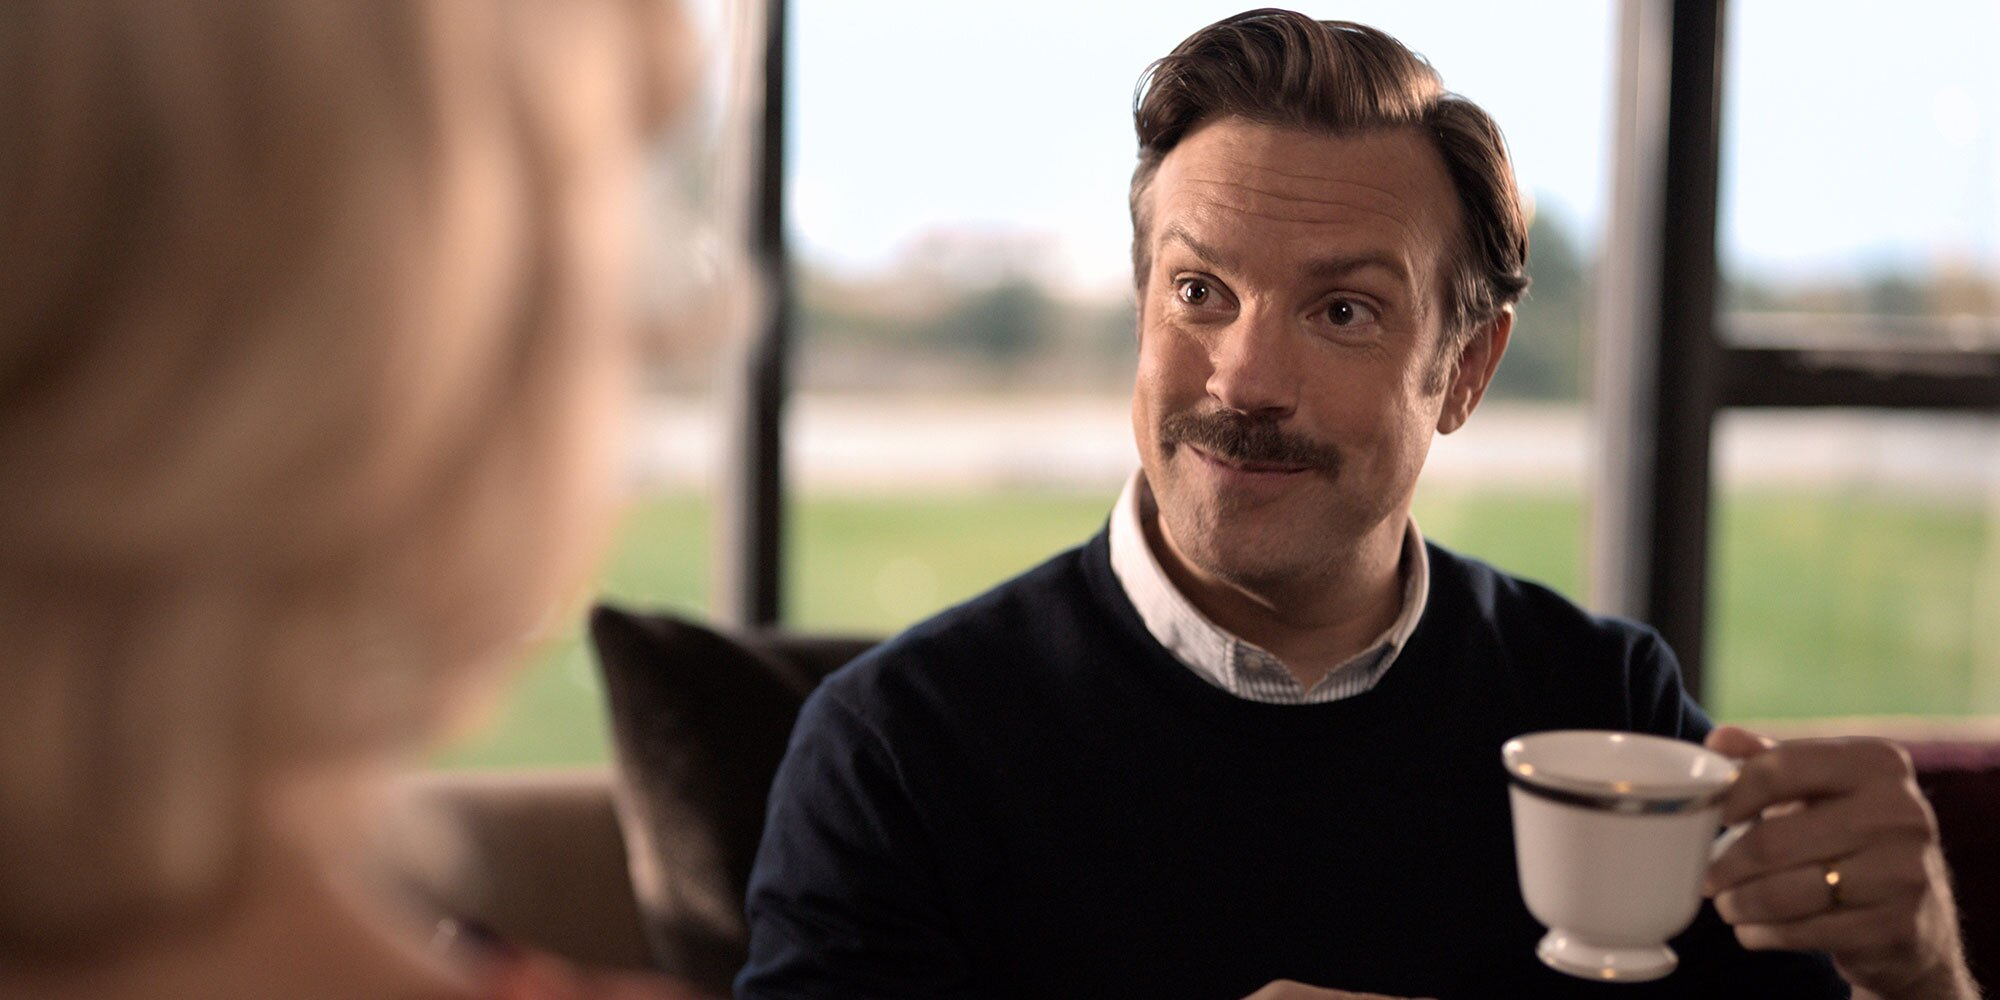 Jason Sudeikis and his 'Ted Lasso' costars on making the feel-good TV hit of 2020